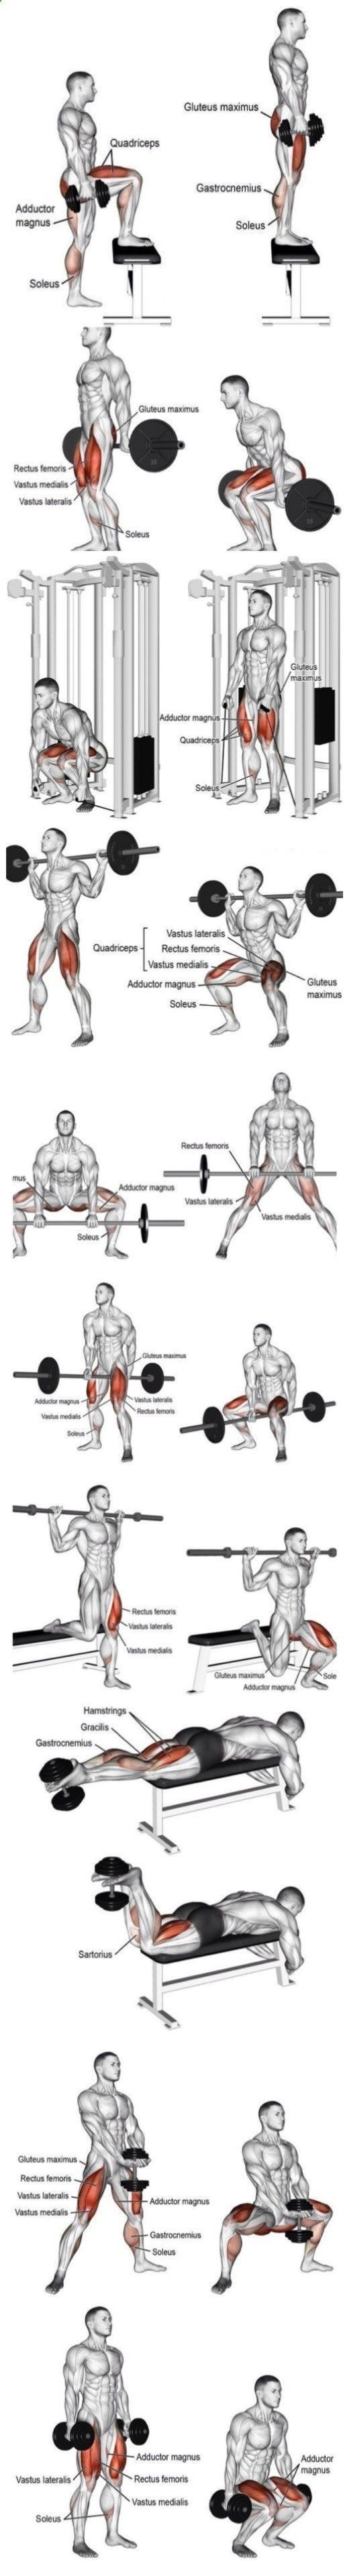 Excersices For Legs At Home and At The Gym - SWAGGER - Strengthening our legs is an exercise that we are going to make profitable from the beginning and, therefore, we must include it in our weekly training routine